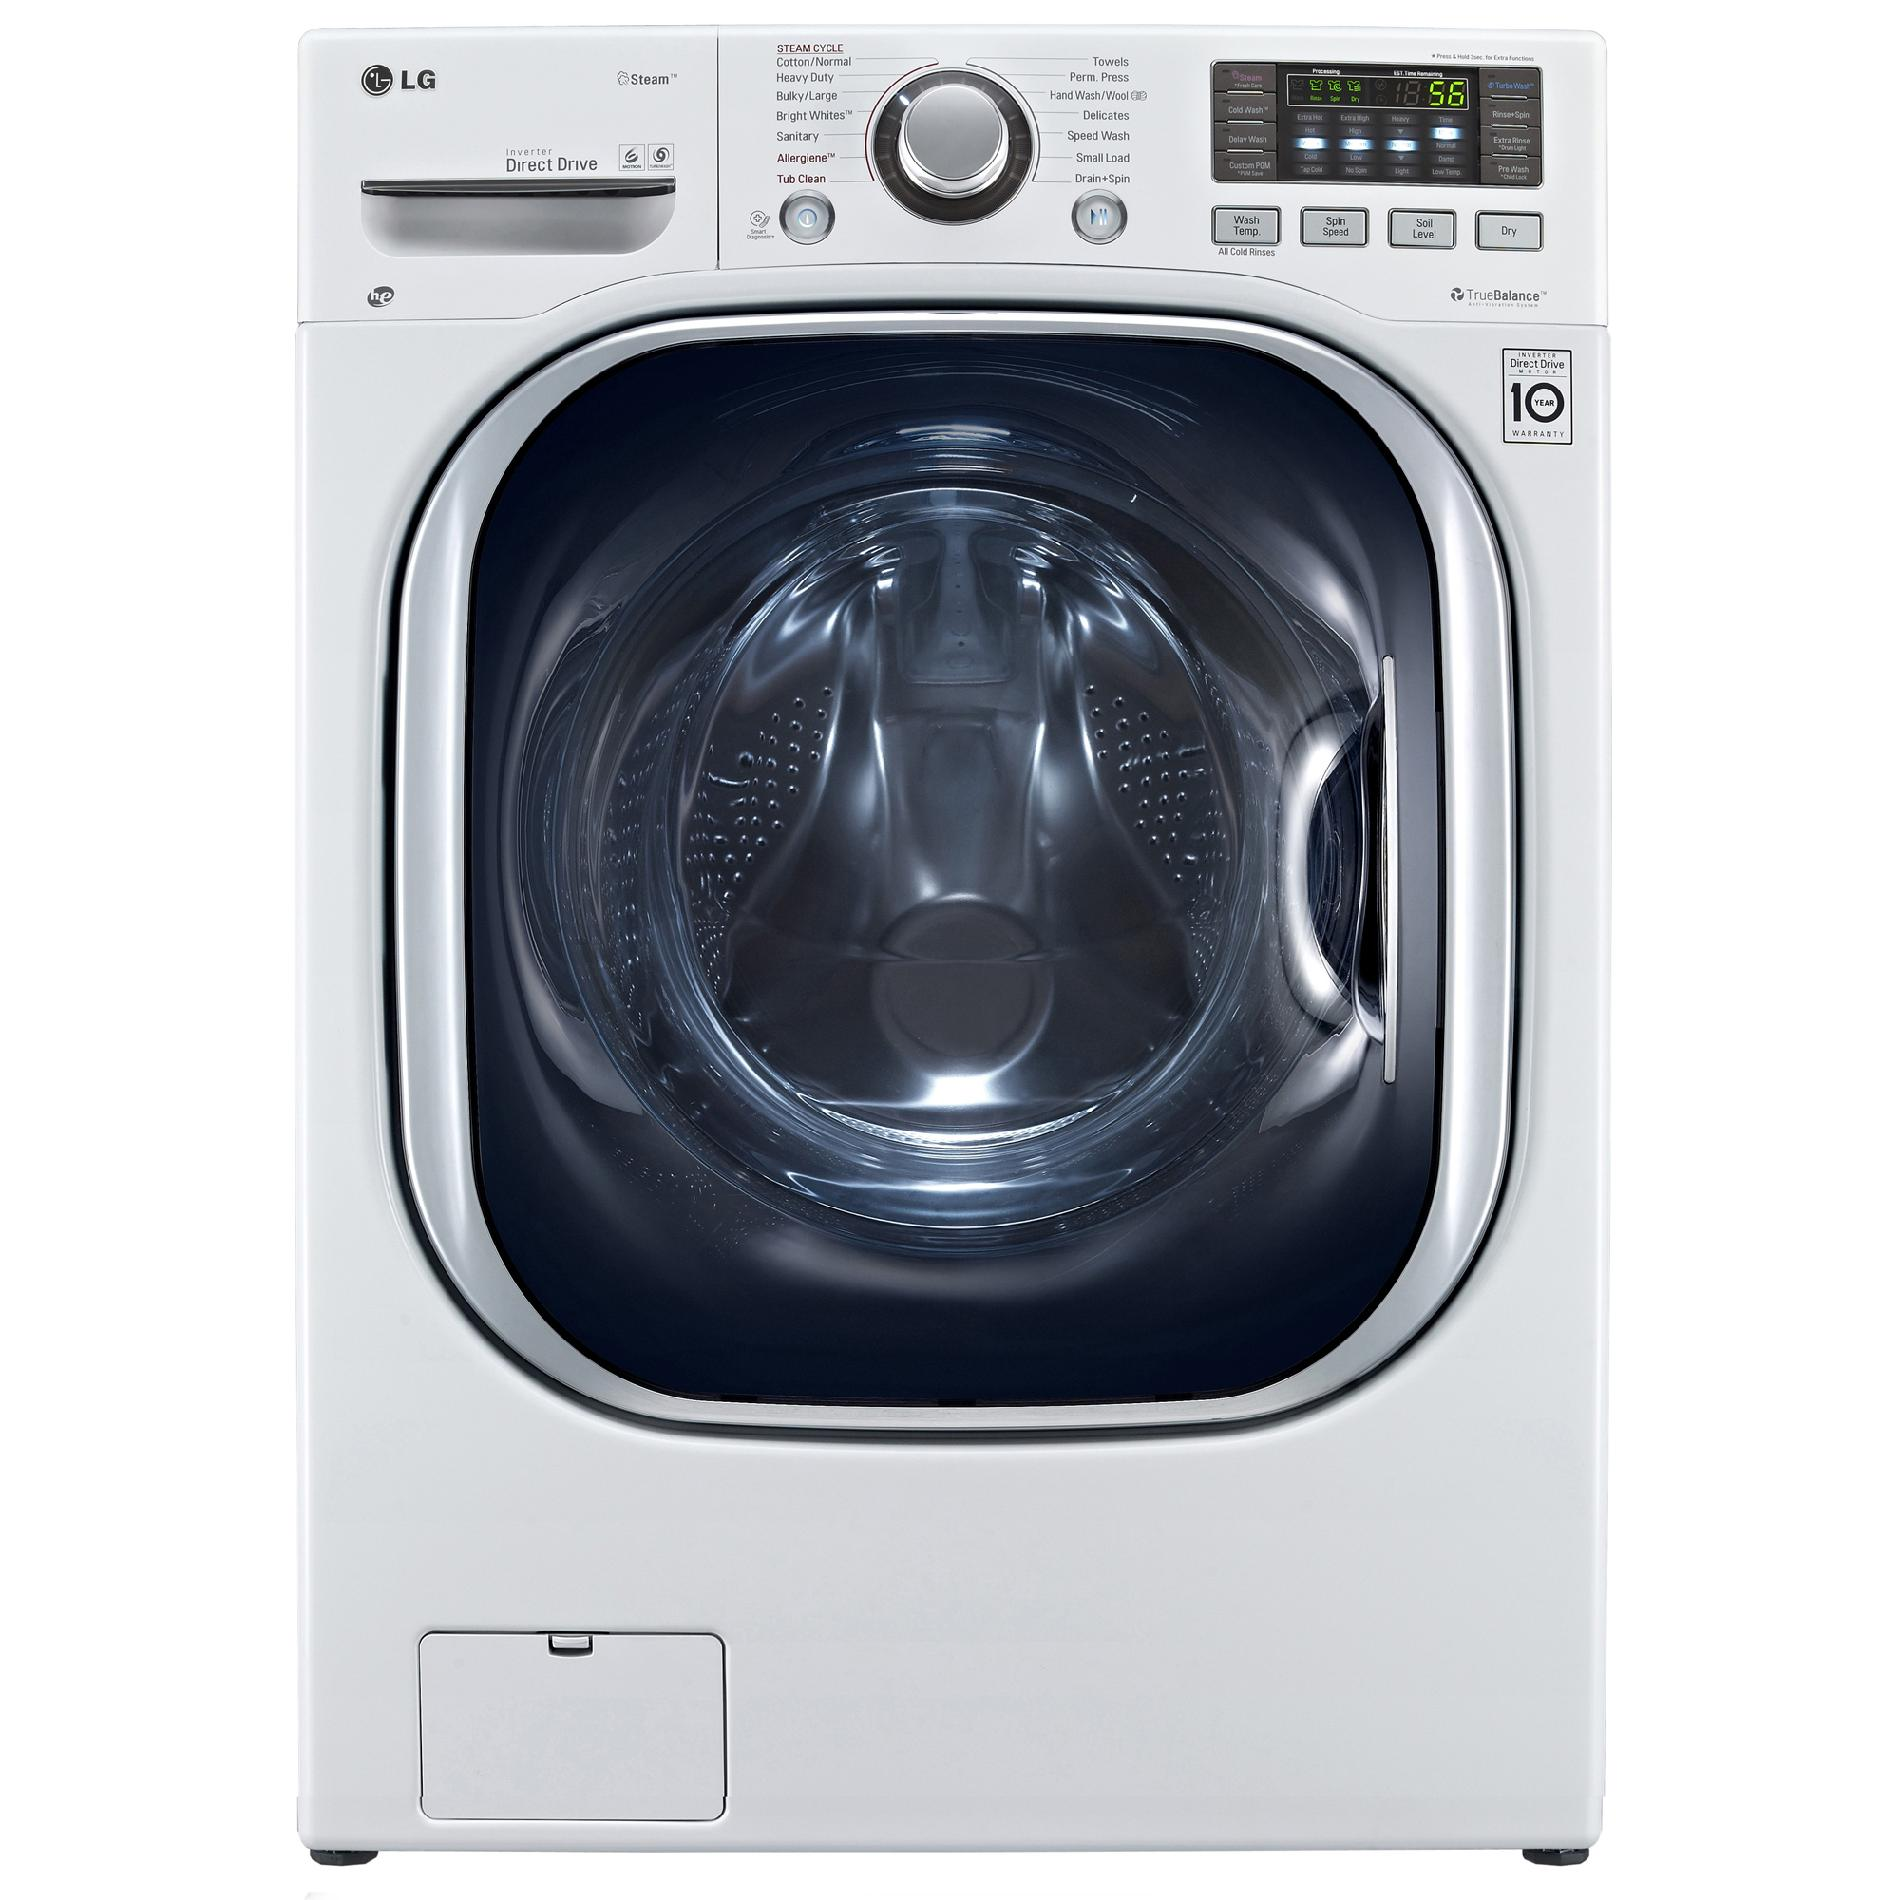 hight resolution of  electric dryer i have a sears kenmore electric dryer model 110 on kenmore sears kenmore electric dryer wiring diagram